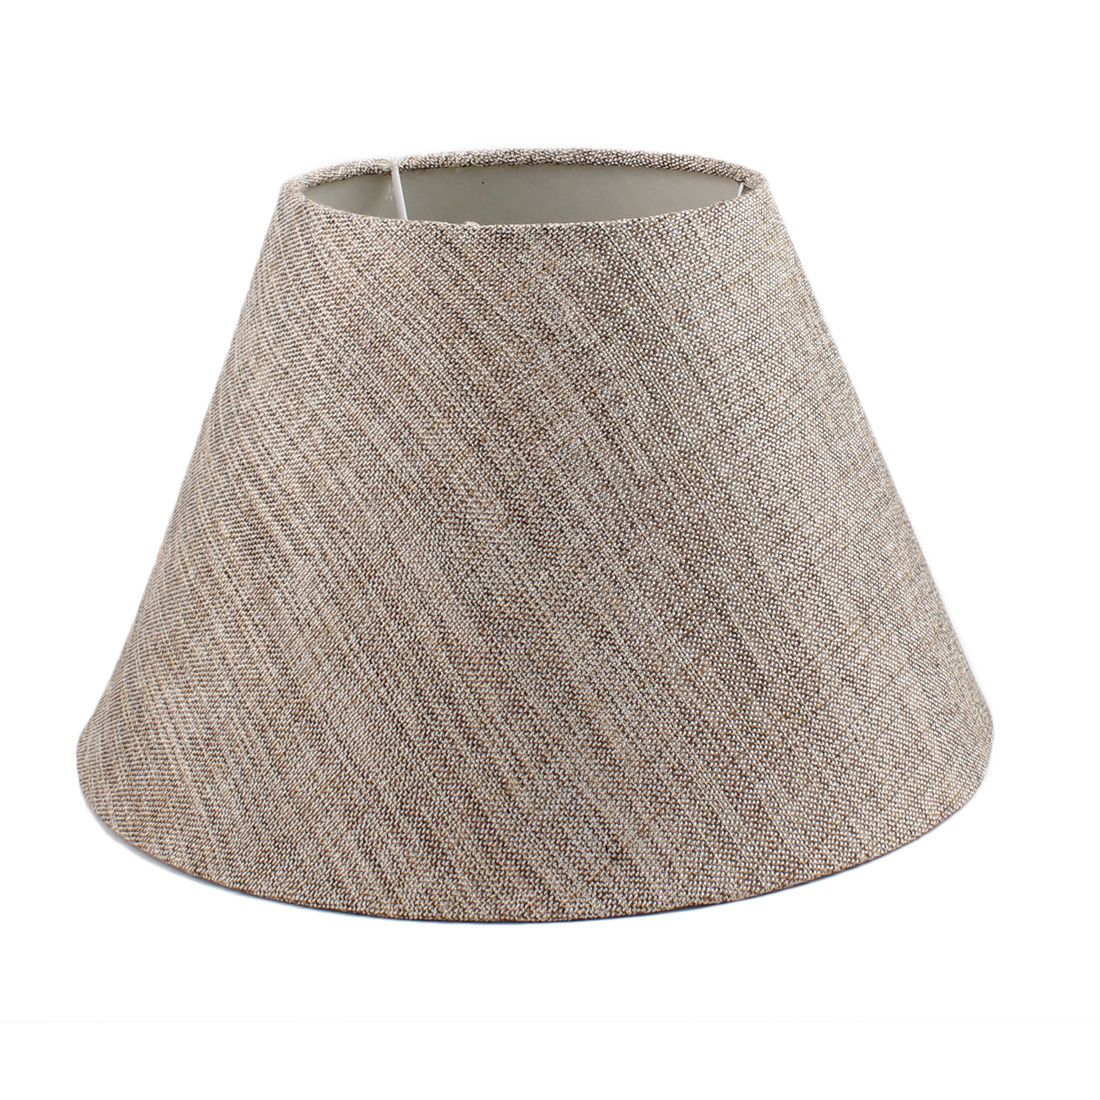 150mm x 300mm x 190mm Brown Fabric Shell Lamp Shade for Student Reading Lamp